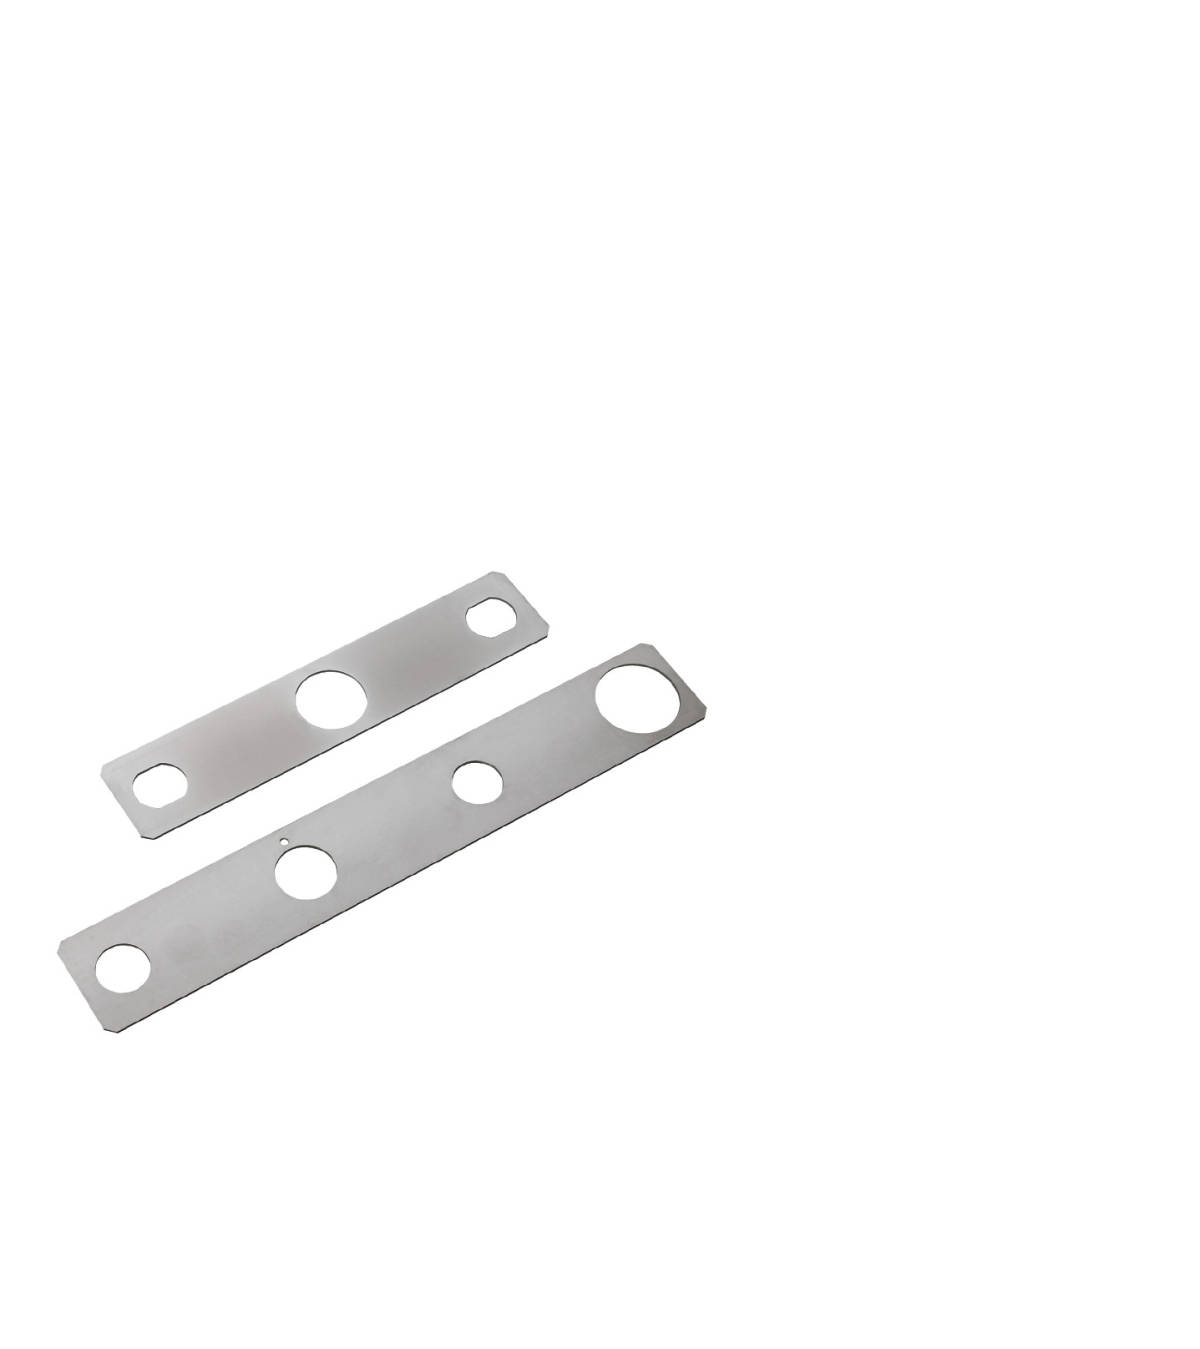 Installation plate, n.a., 39449000